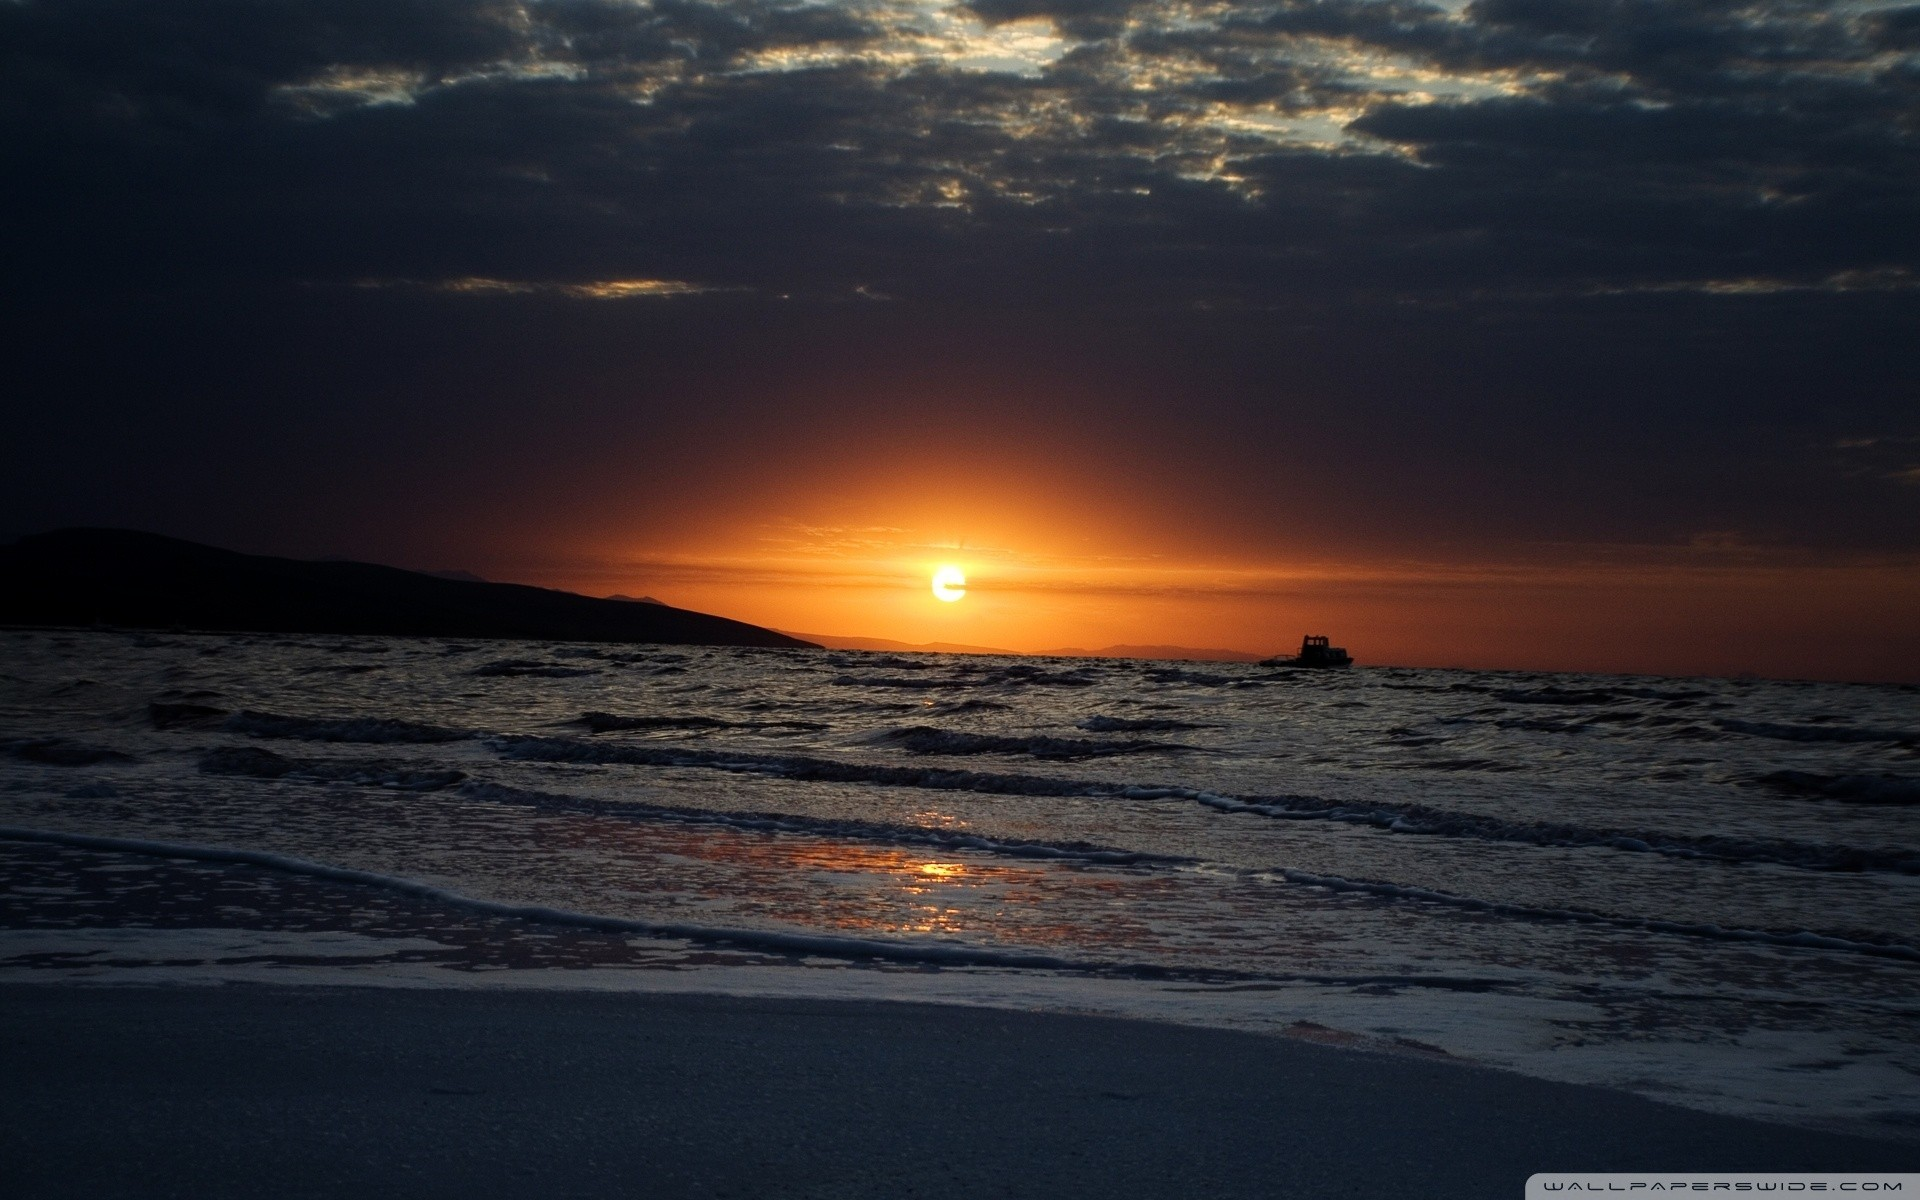 Landscapes Turkey afternoon HD Wallpaper